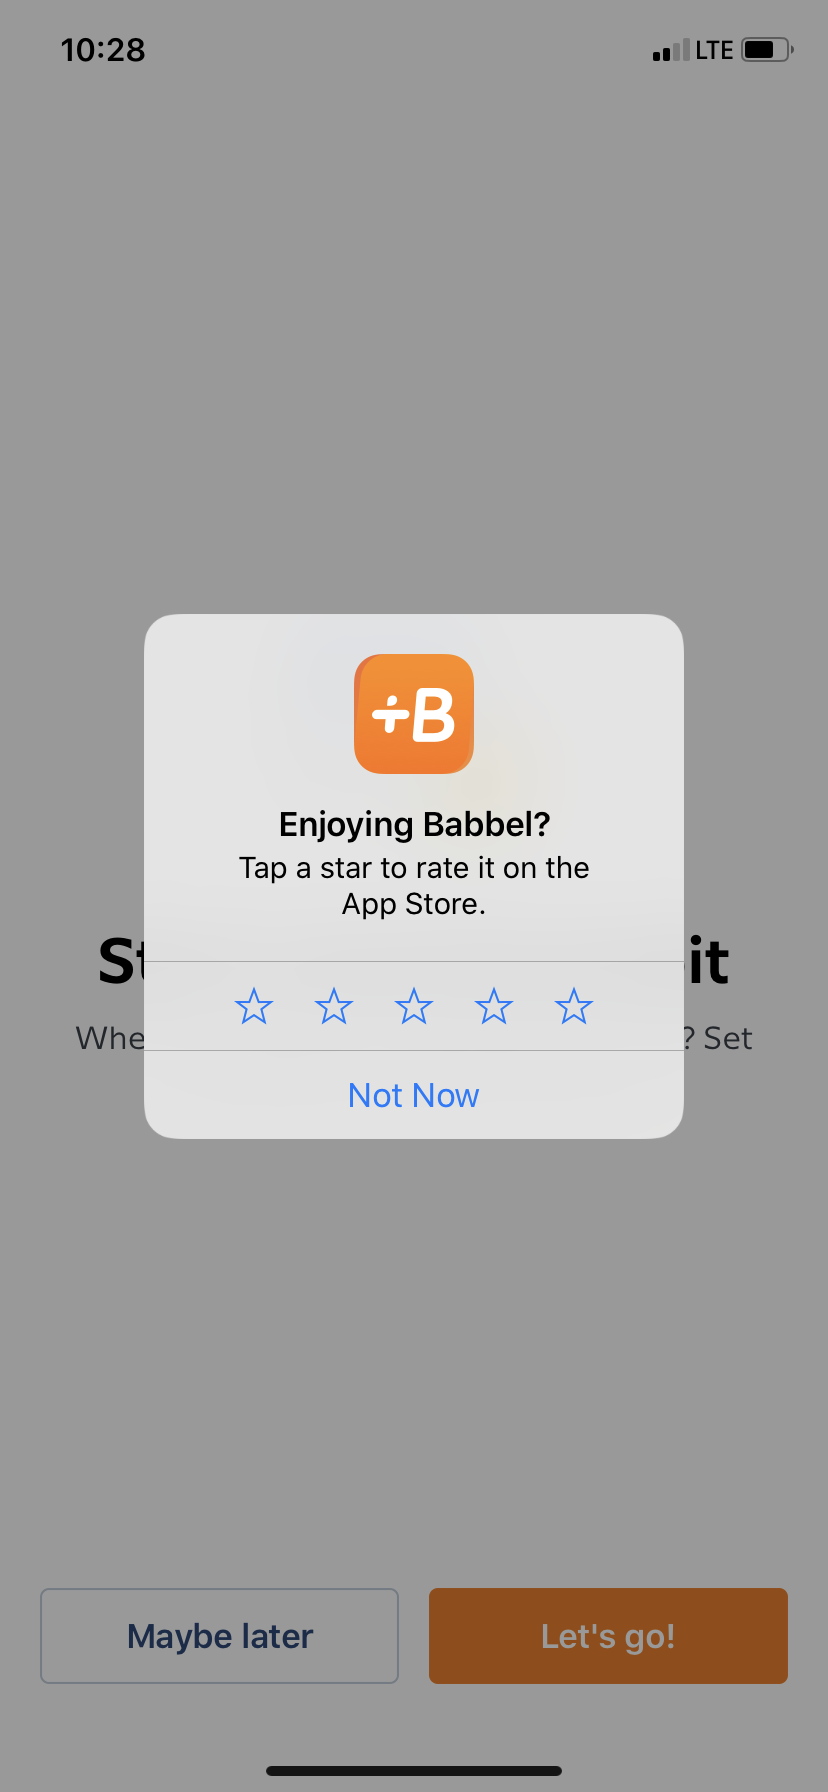 babbel app user onboarding mobile app store star rating request popup